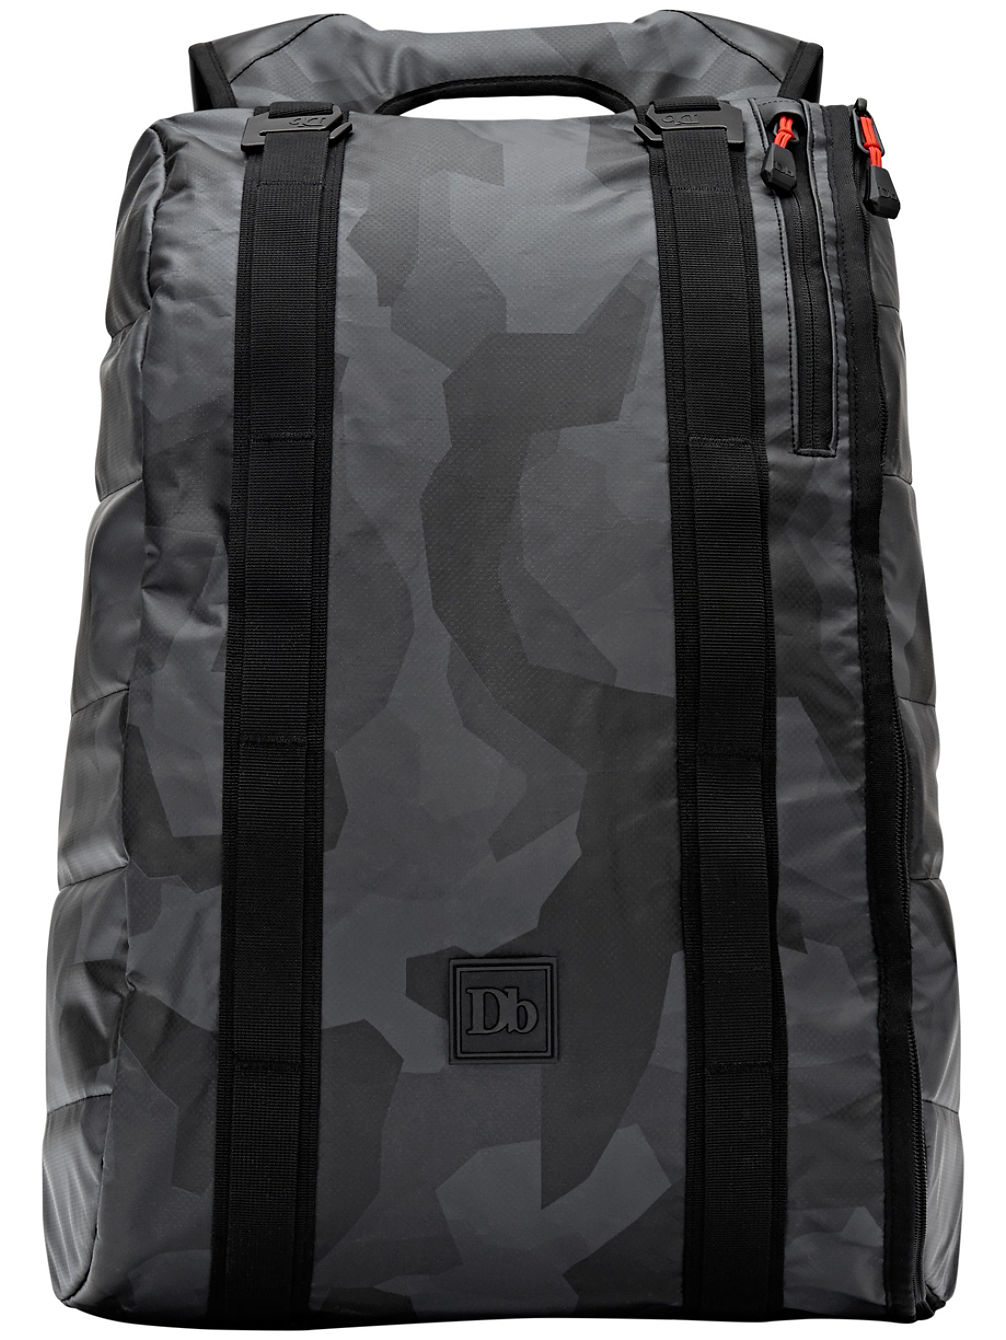 The Base 15L Black Camo Backpack